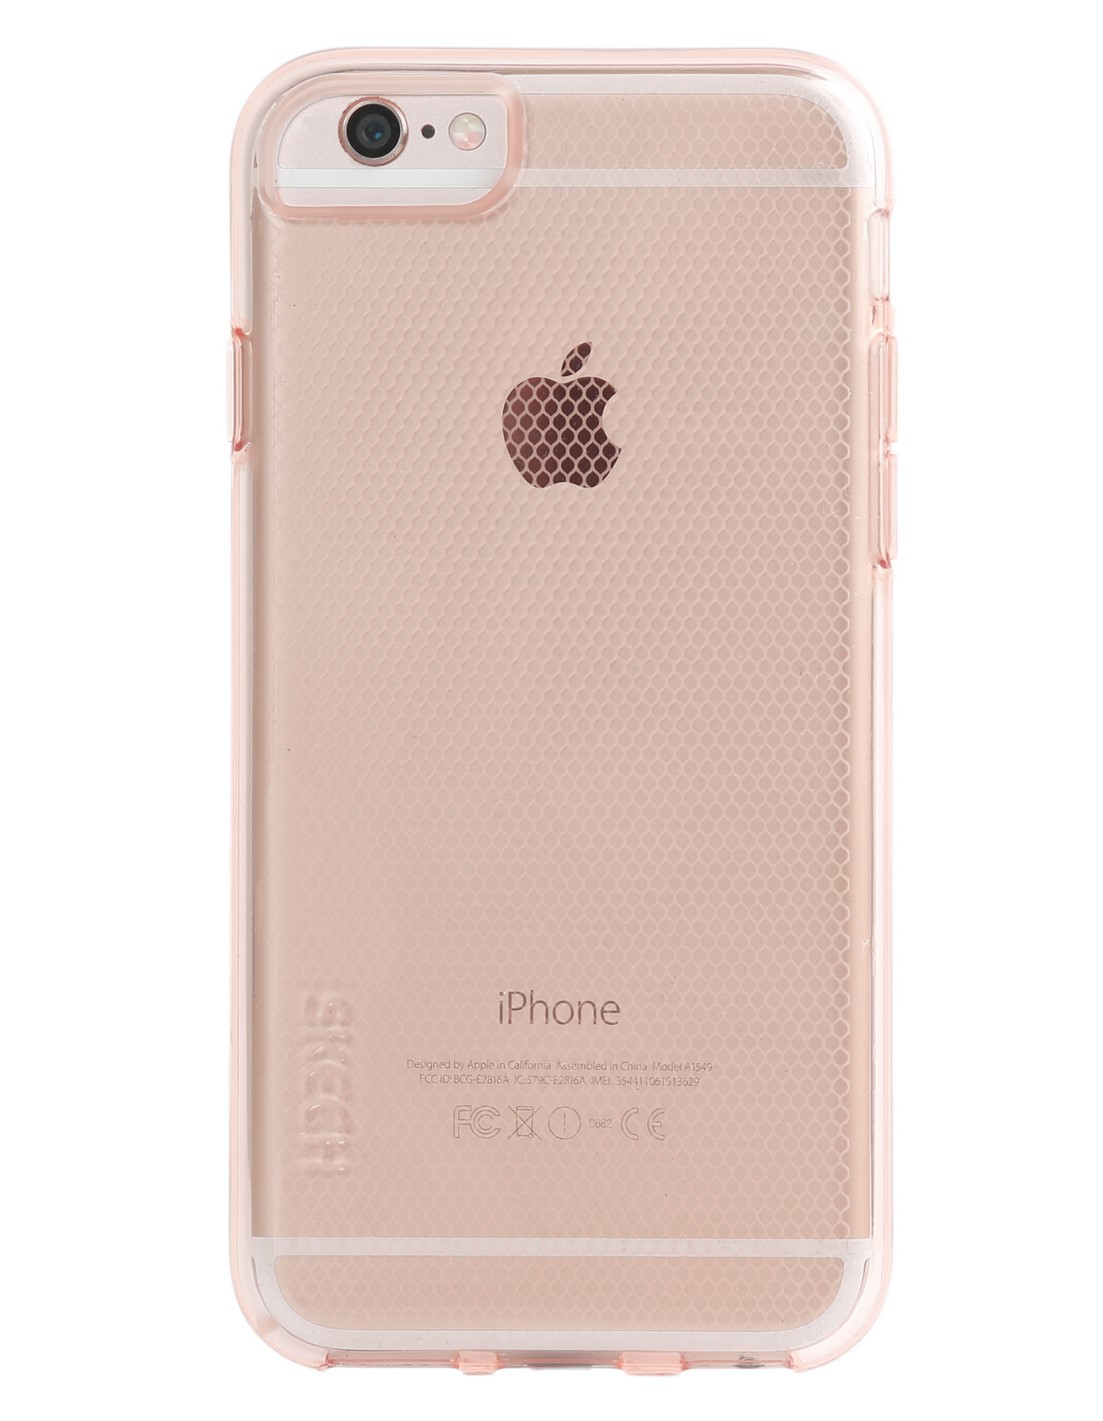 iphone 6 rose gold skech matrix gold transparant voor apple iphone 1201